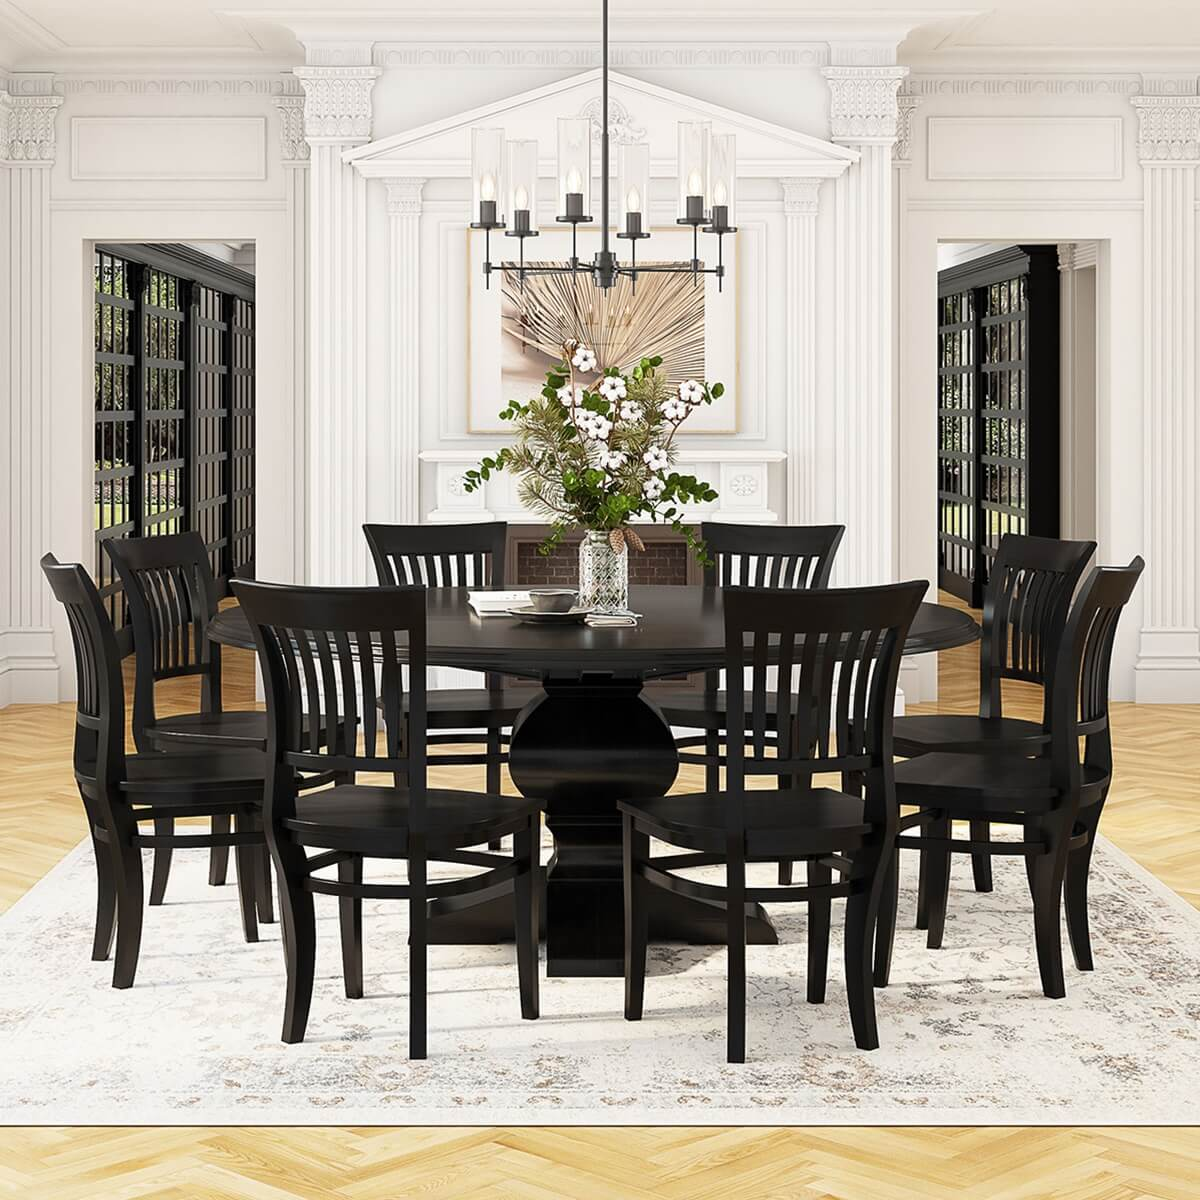 Sierra Nevada Large Round Rustic Solid Wood Dining Table Chair